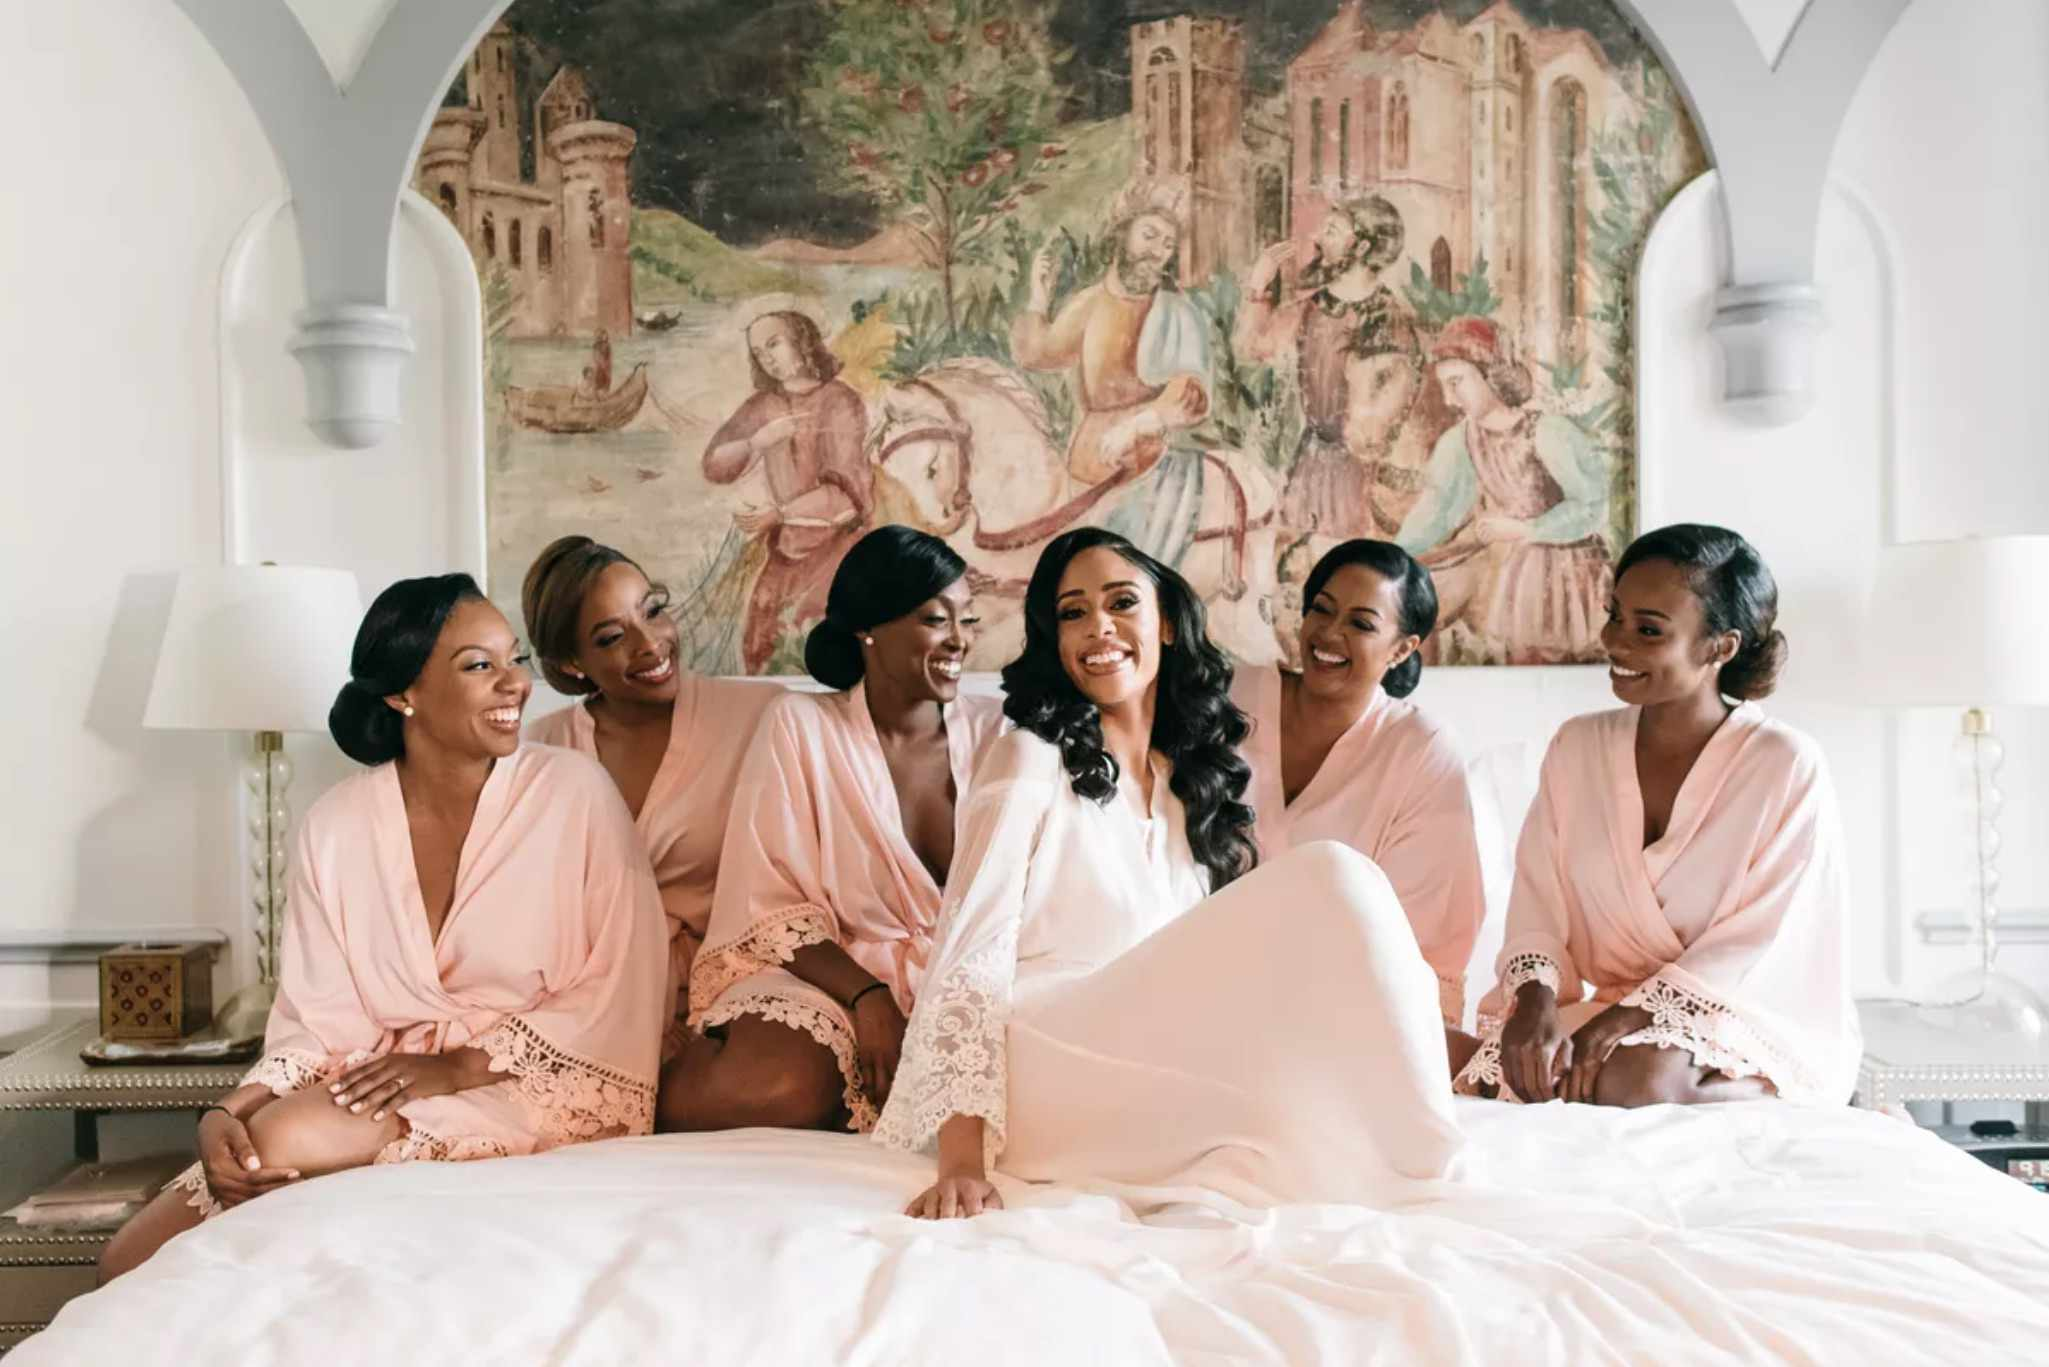 Bride and bridesmaids on bed